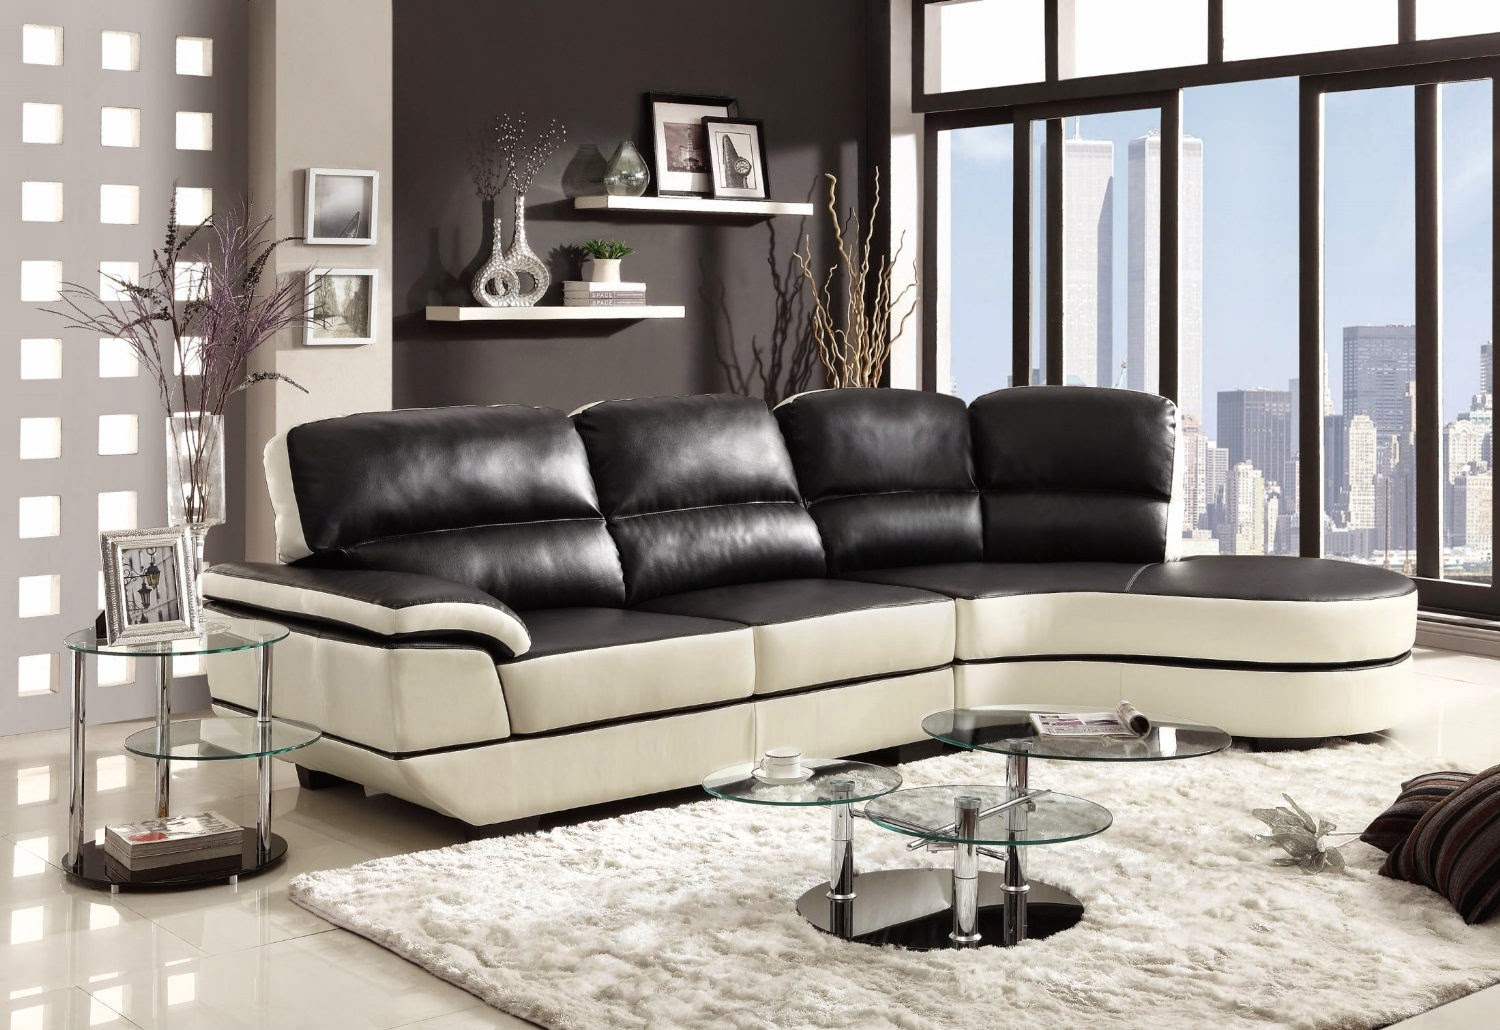 Curved Sofa Website Reviews: Curved Sectional Sofa With Chaise Regarding 4Pc Crowningshield Contemporary Chaise Sectional Sofas (View 6 of 15)